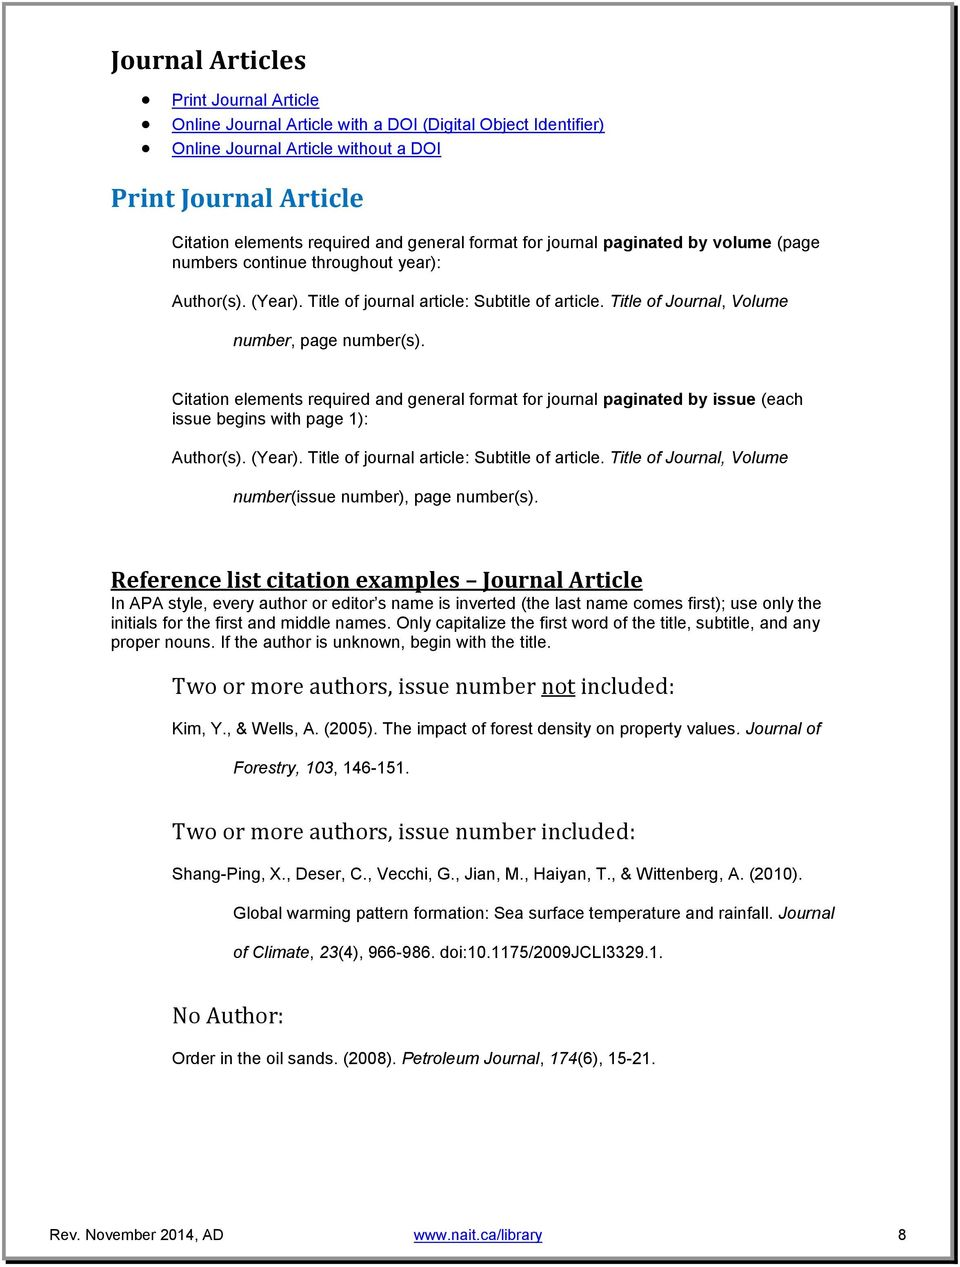 Citation elements required and general format for journal paginated by issue (each issue begins with page 1): Author(s). (Year). Title of journal article: Subtitle of article.